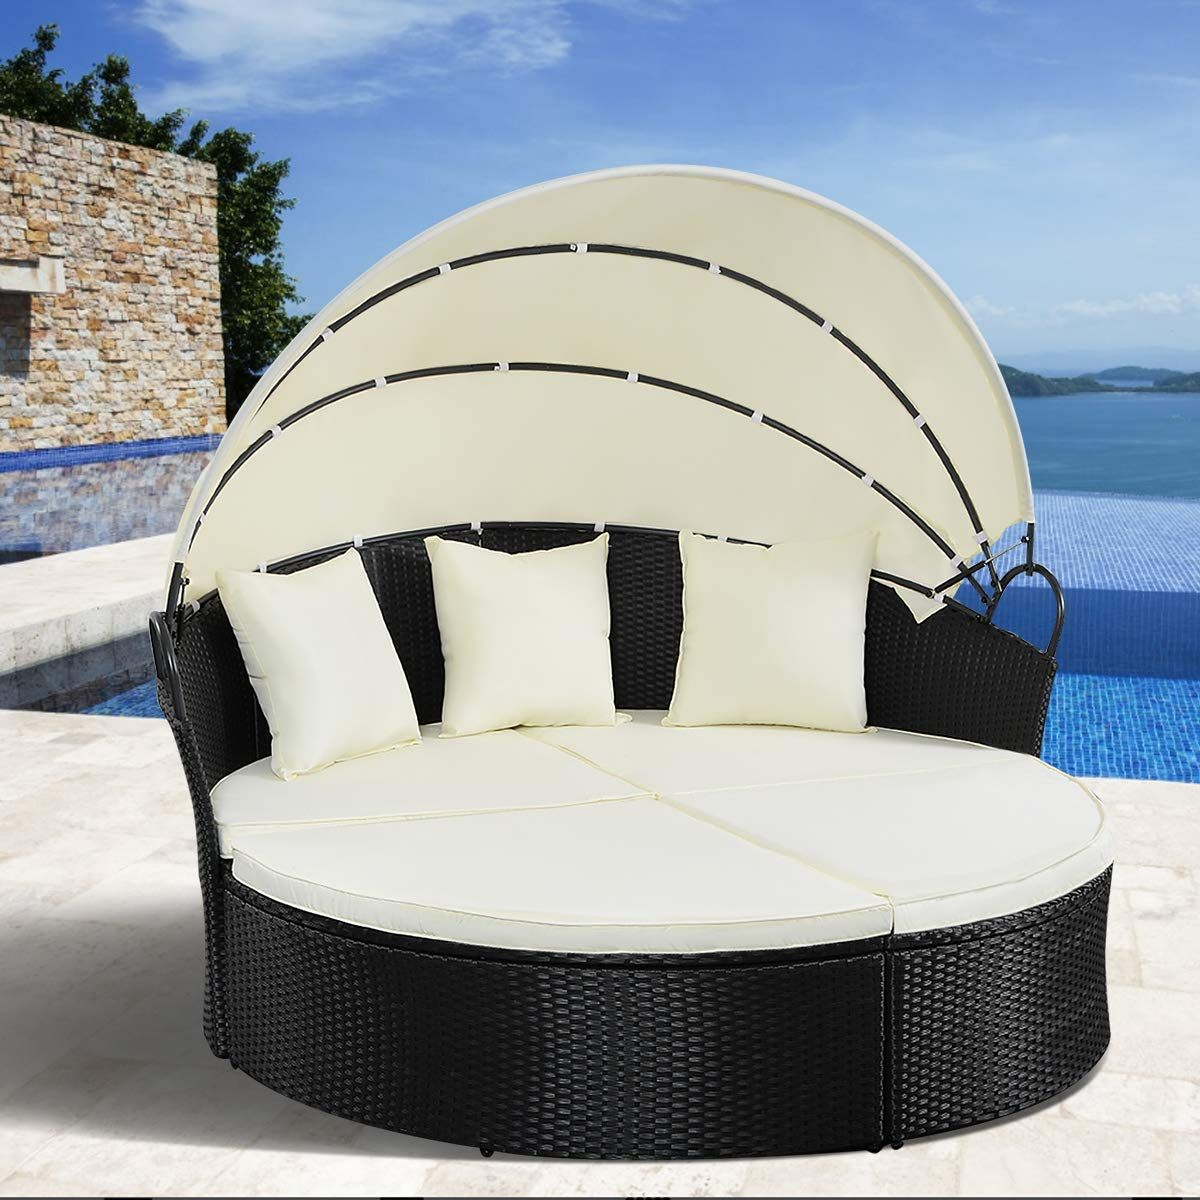 - Outdoor Wicker Daybeds & Rattan Patio Daybeds In 2020 Outdoor